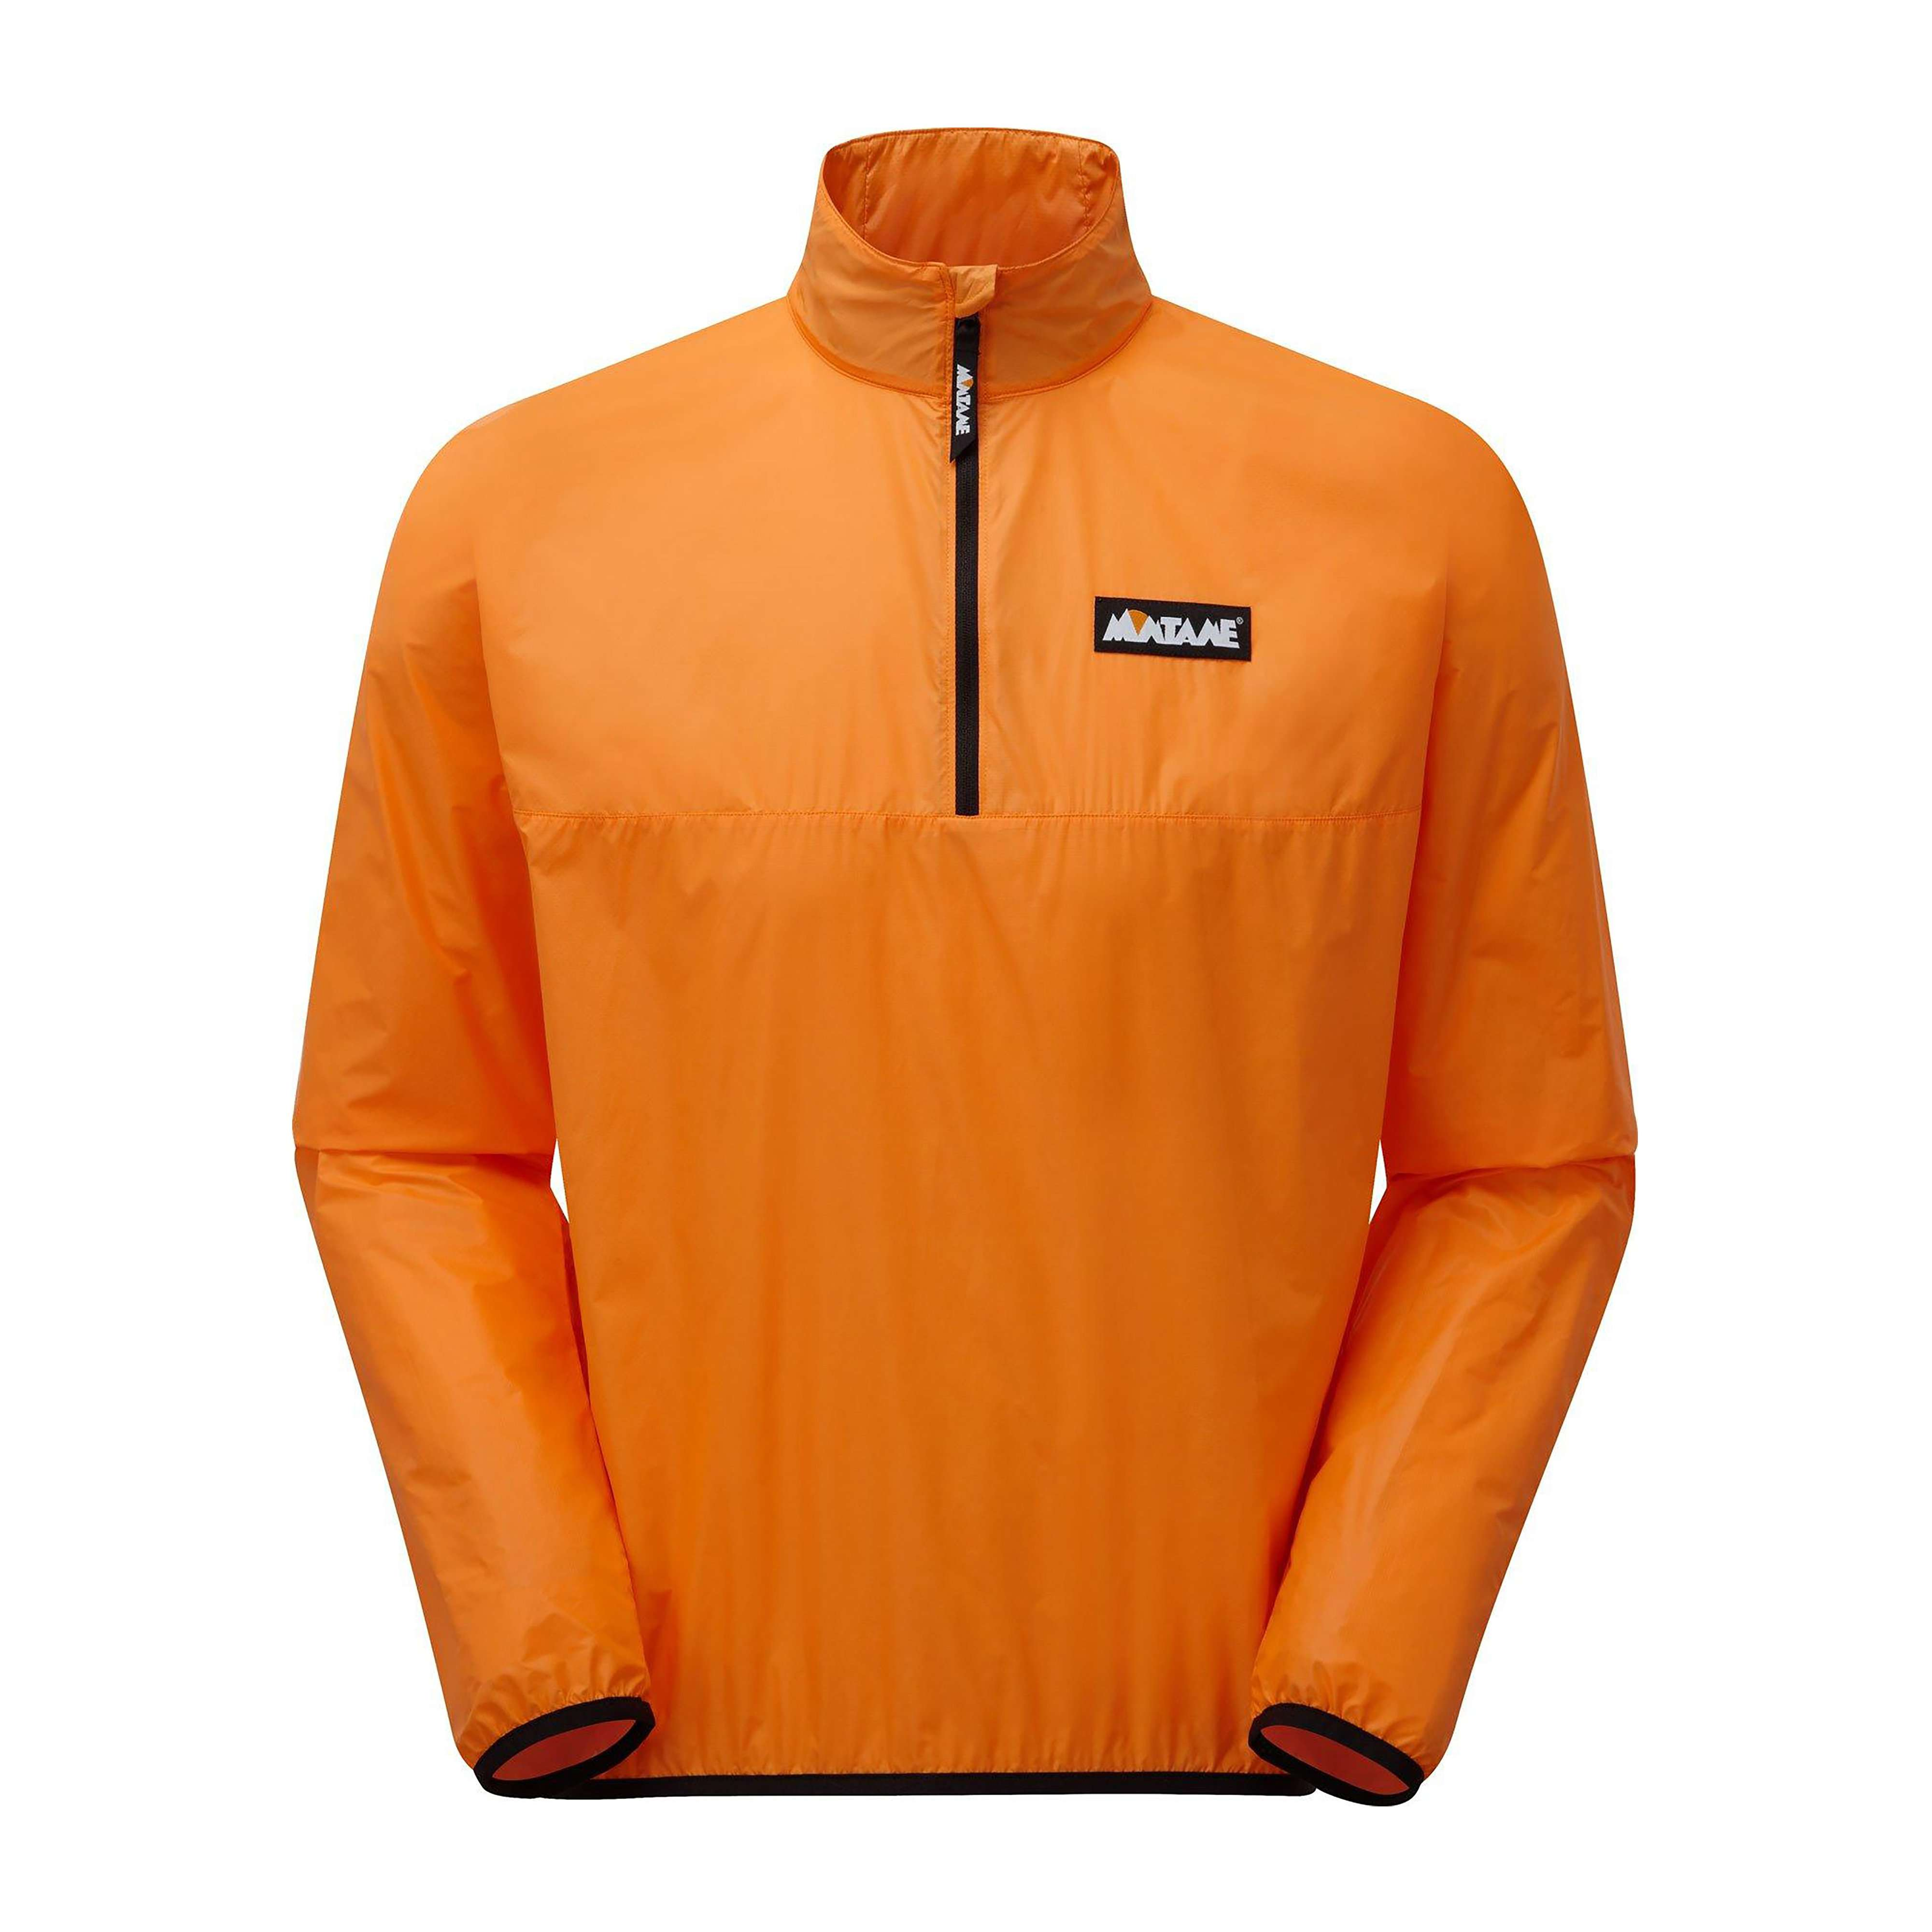 MONTANE Men's Featherlite Smock